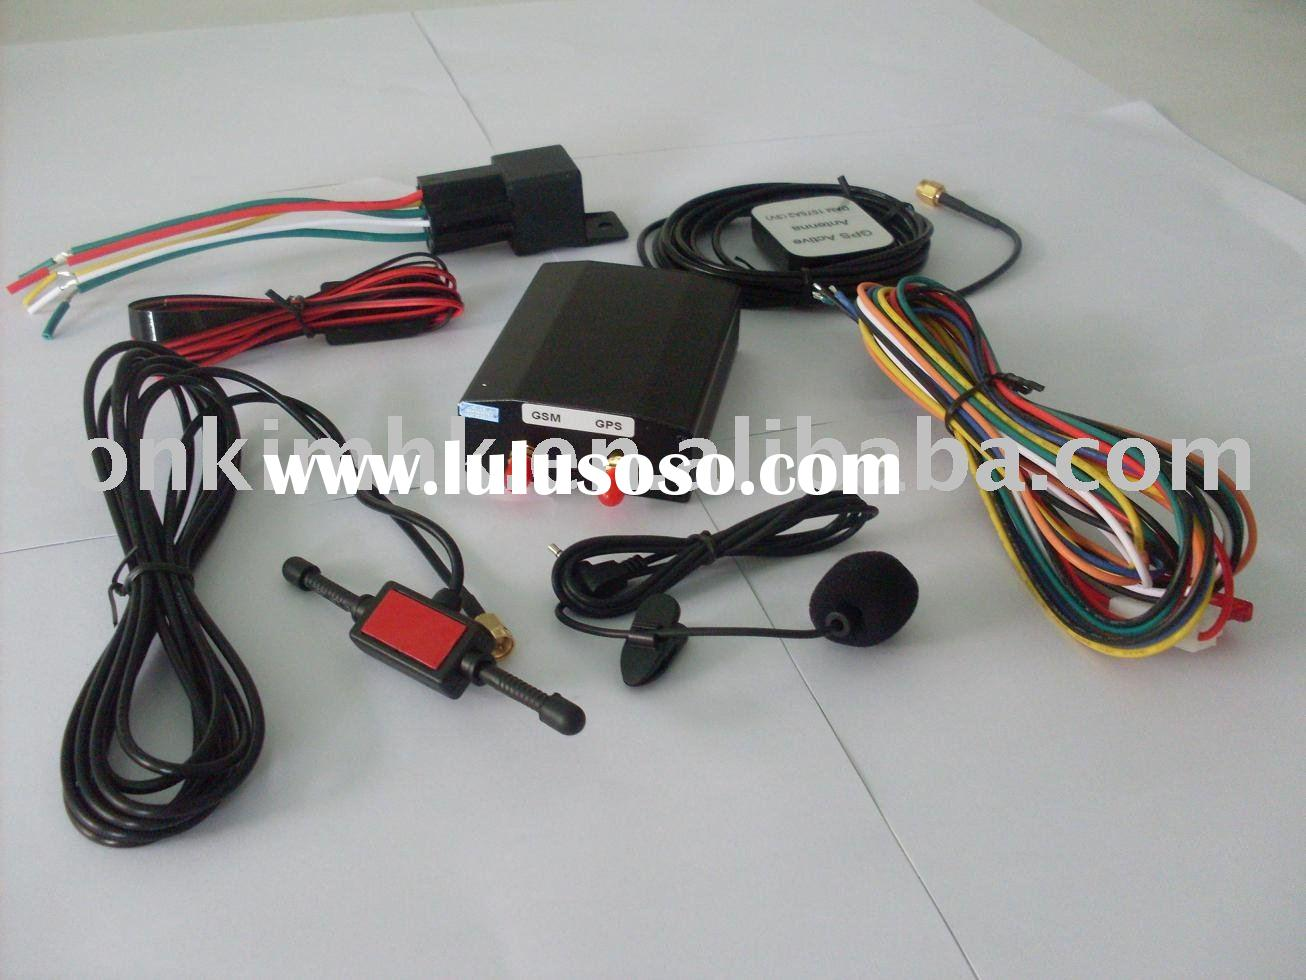 CKM-TK103 Vehicle GPS Tracker 850/900/1800/1900Mhz